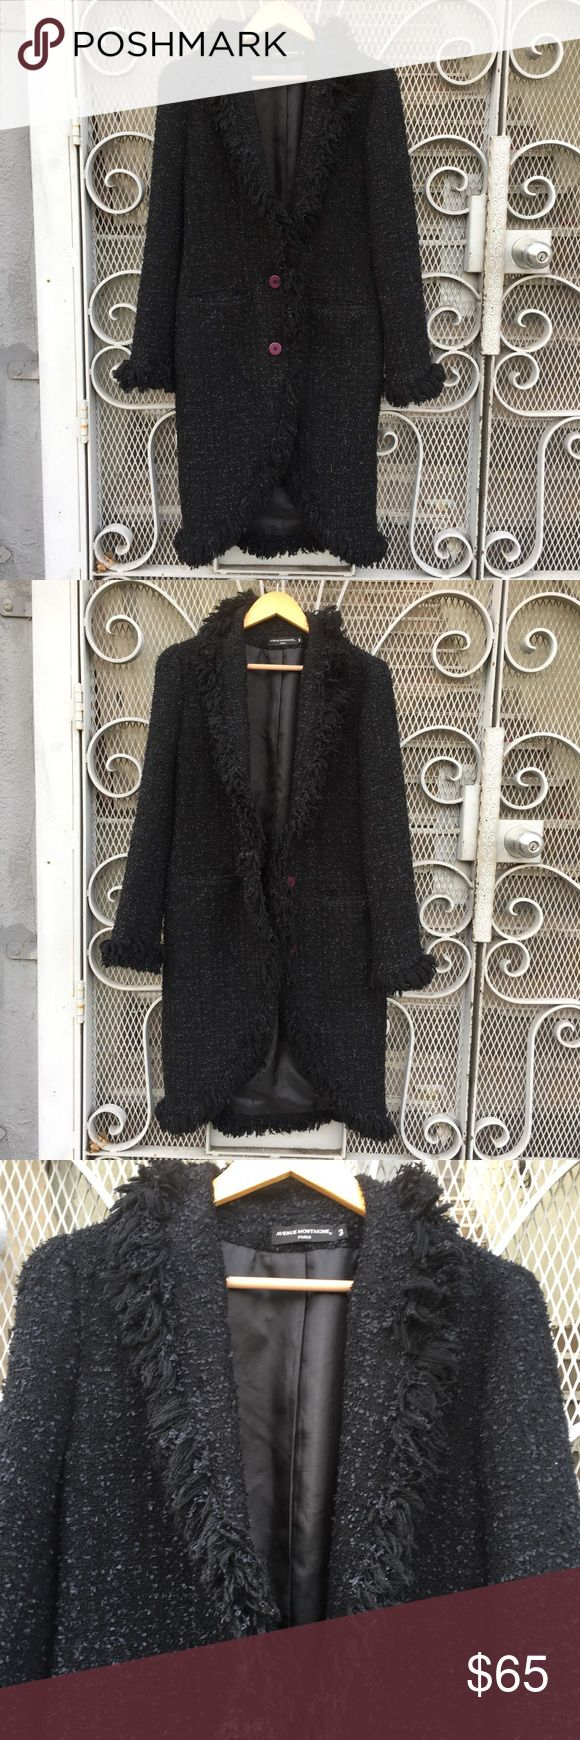 Avenue Montaigne Parks wool tweed long shag coat Great condition. Size 3 (L). Very Chanel like with its tweed boucle and shaggy collar. No try ons or trades but offers welcome Barneys New York Jackets & Coats